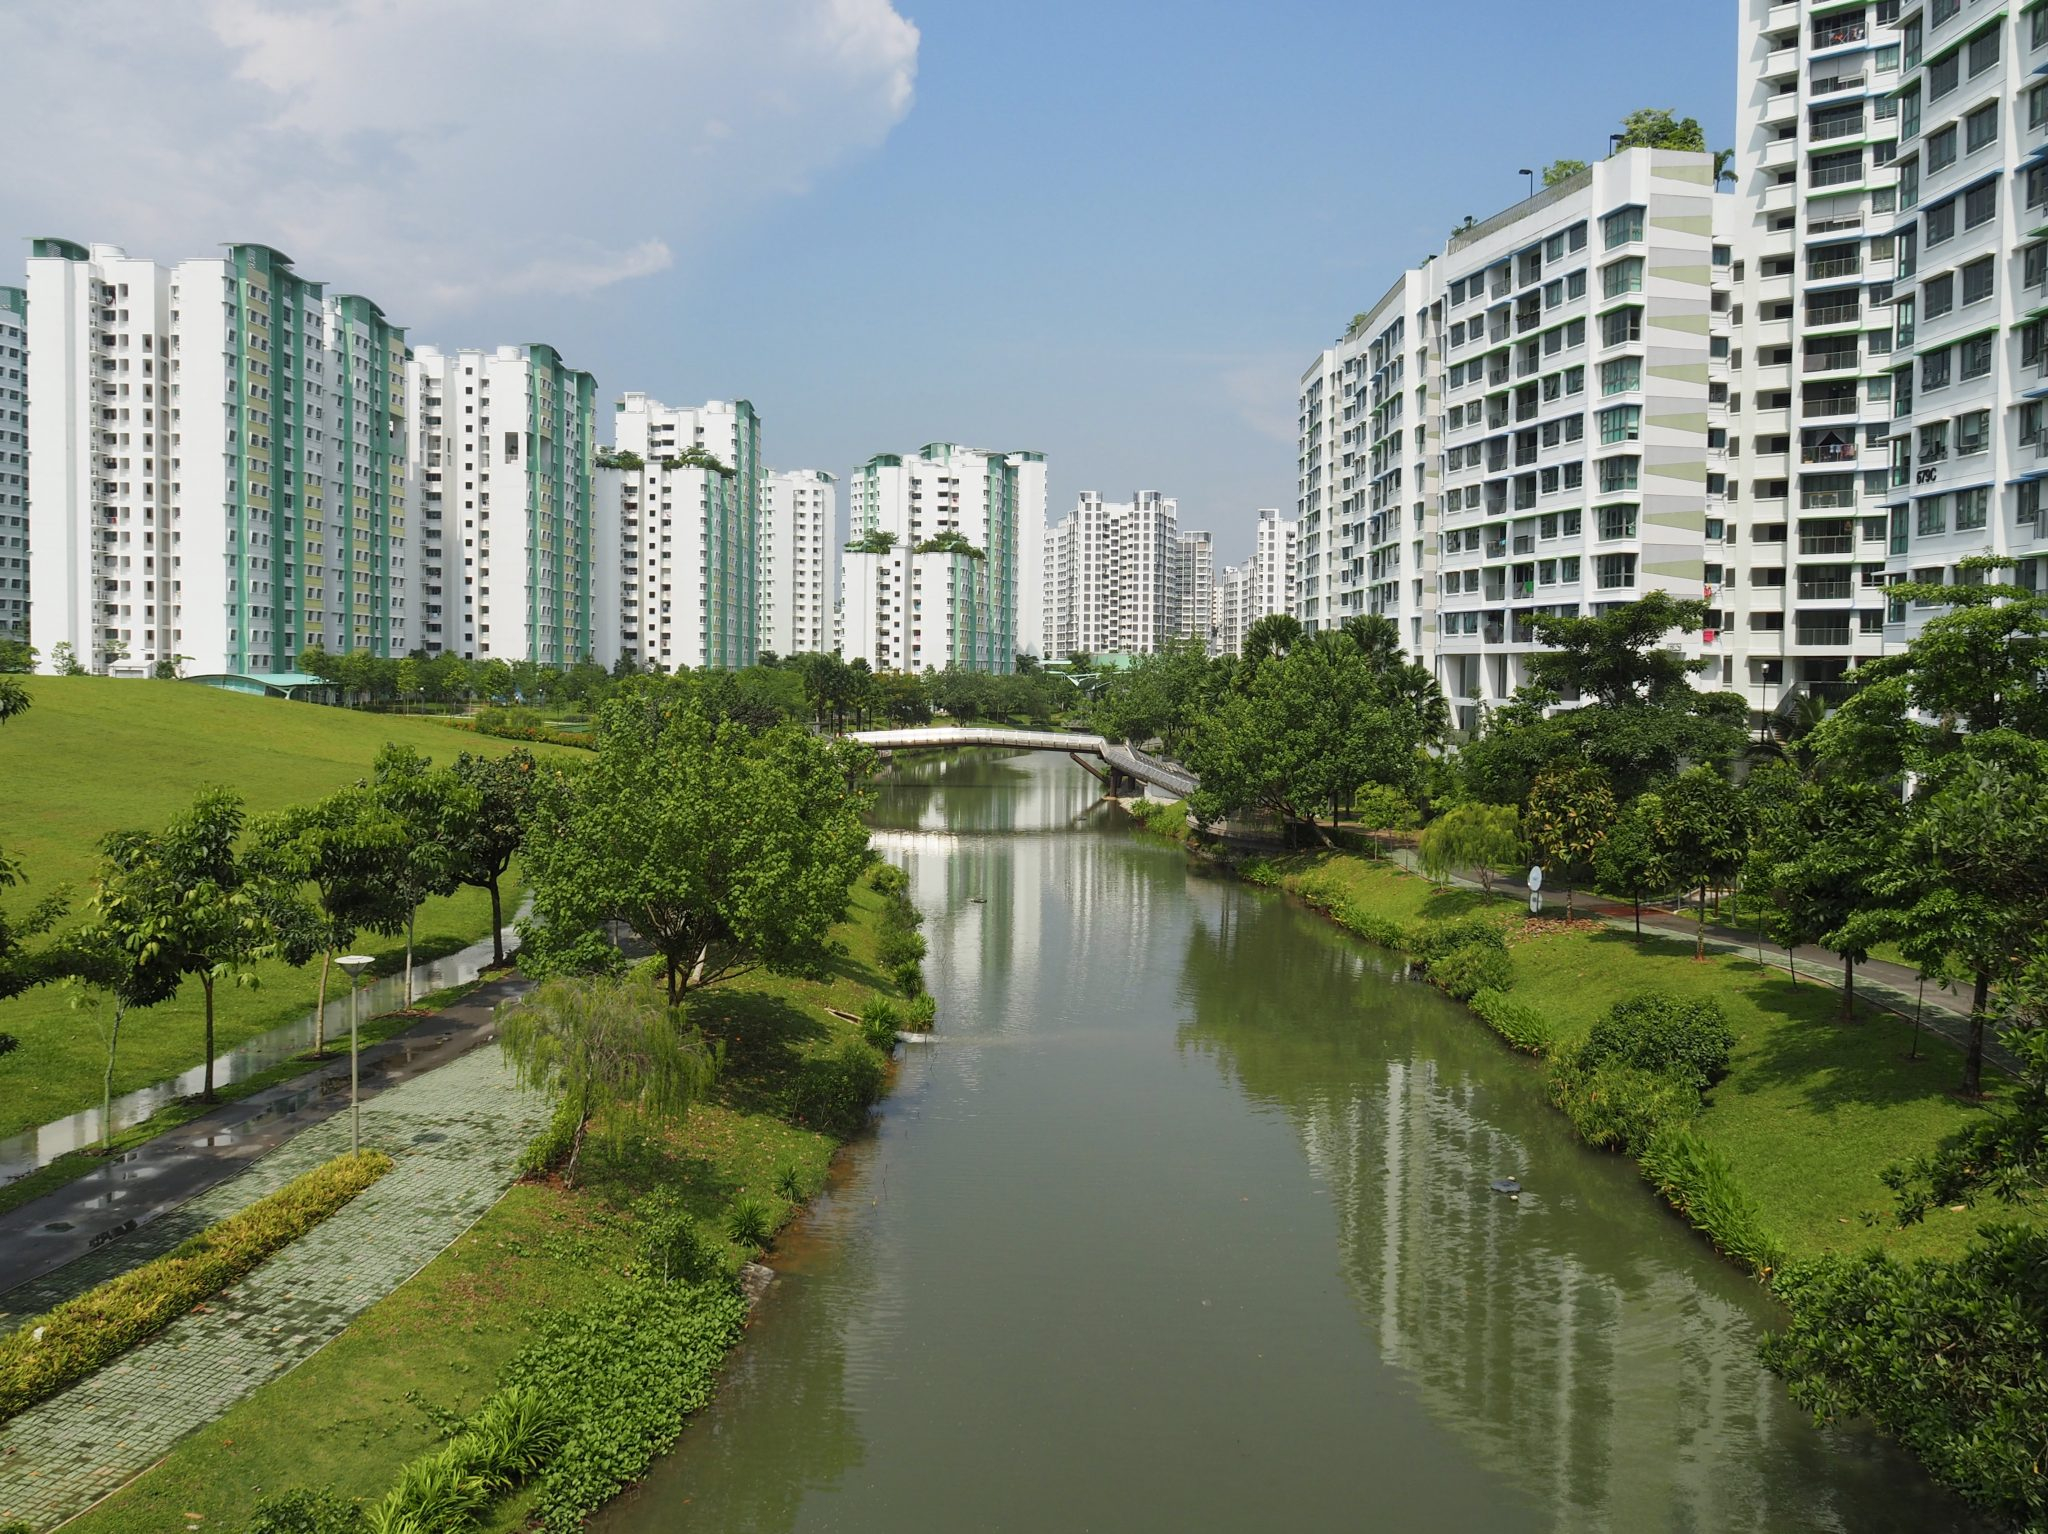 Housing Punggol Waterway Park